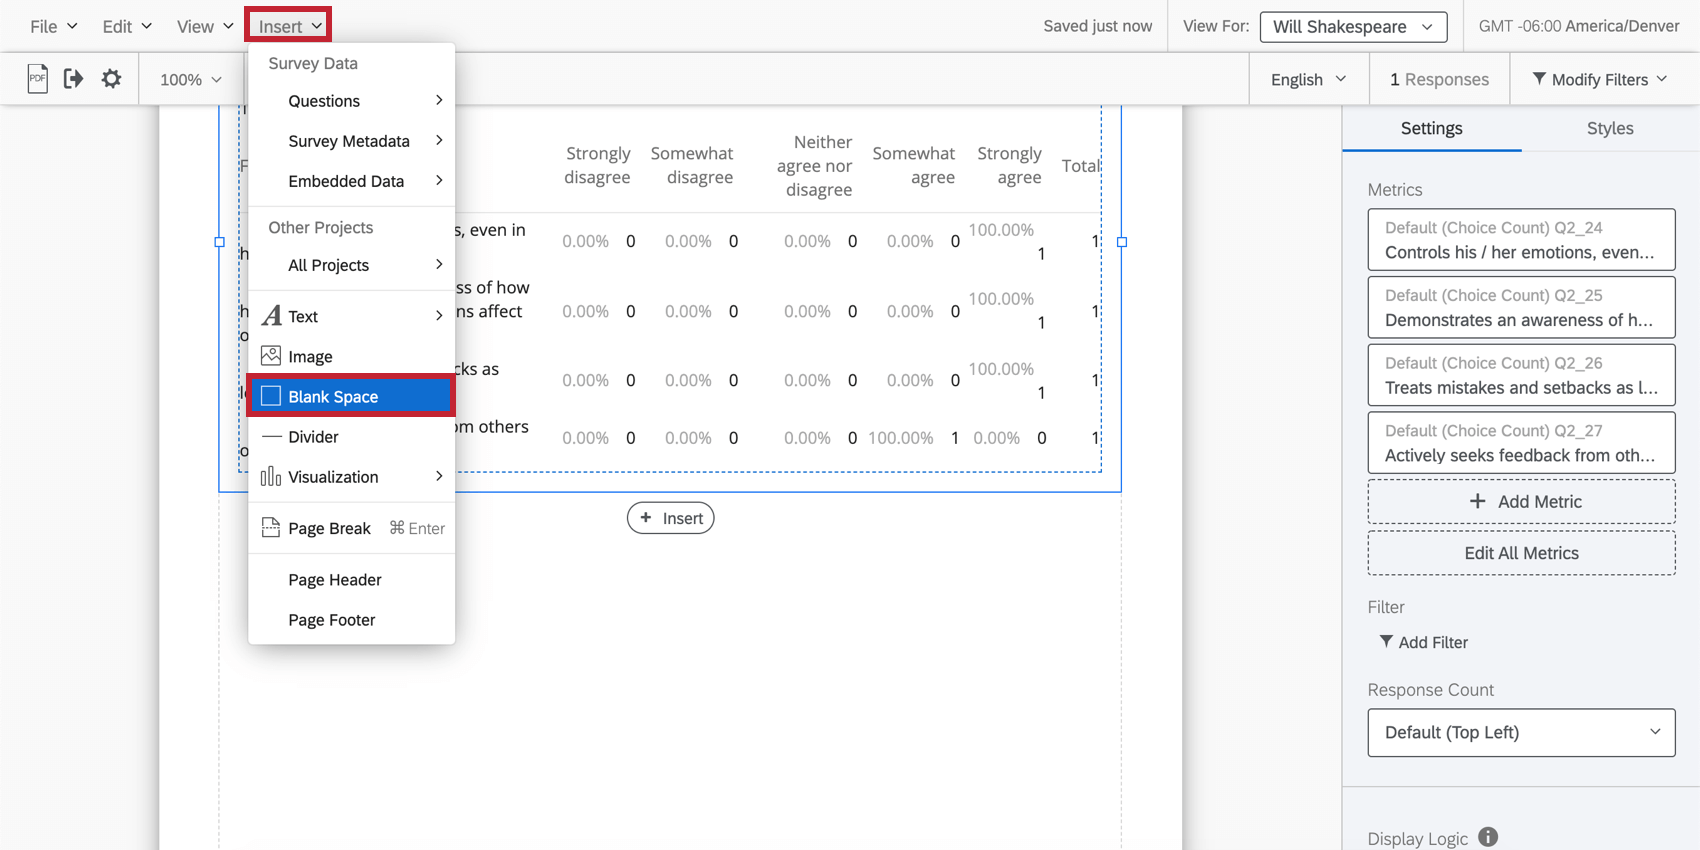 Blank Space option in the Insert dropdown